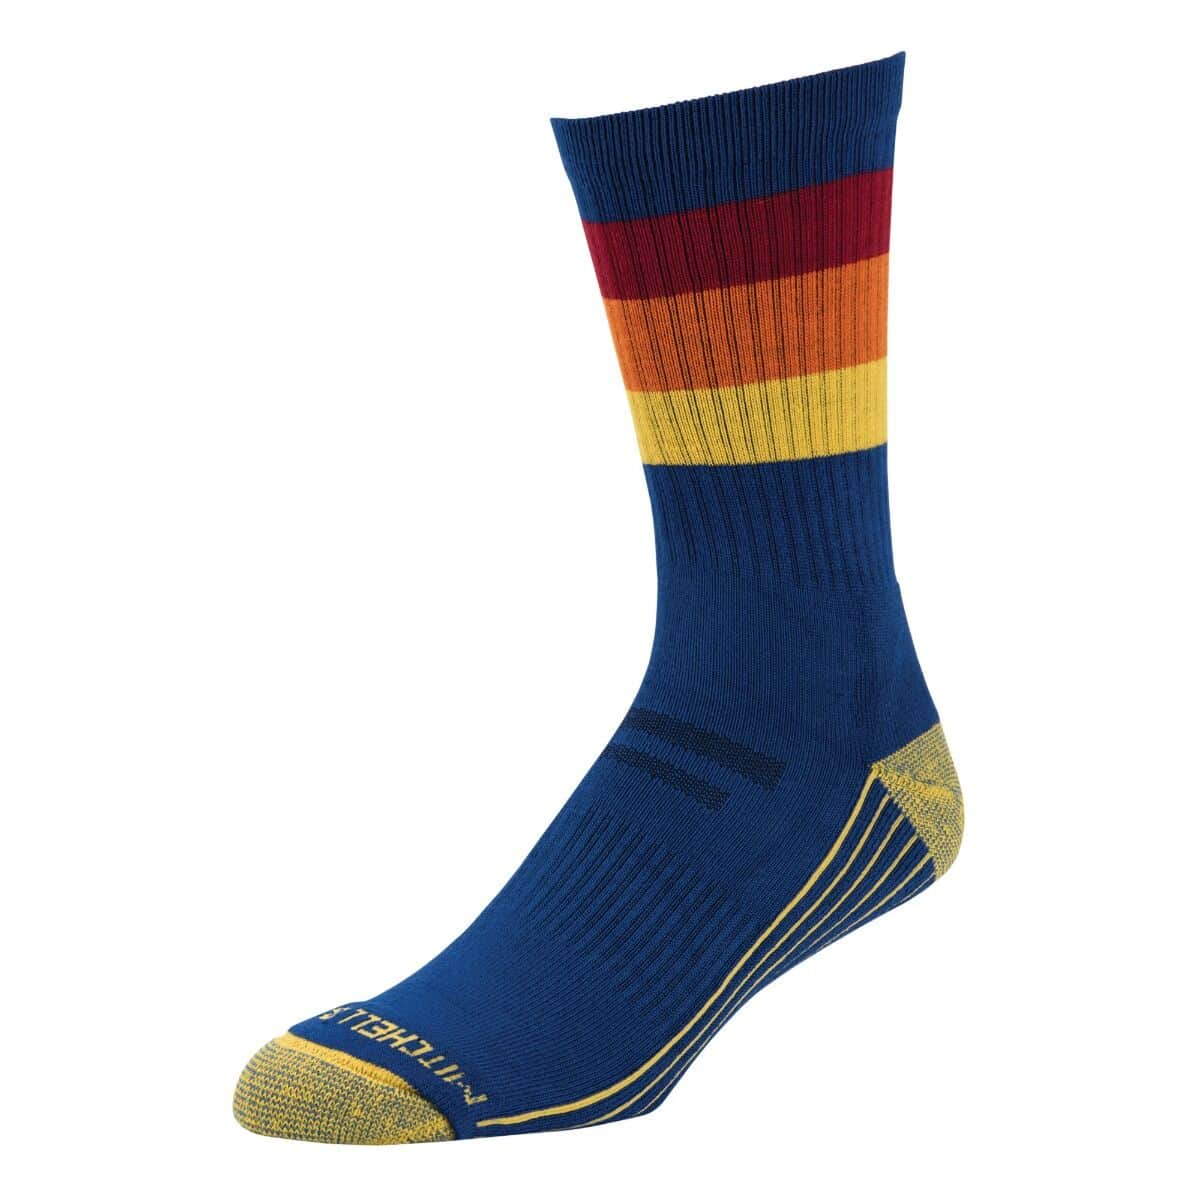 Mitchell & Ness Branded Crew Socks